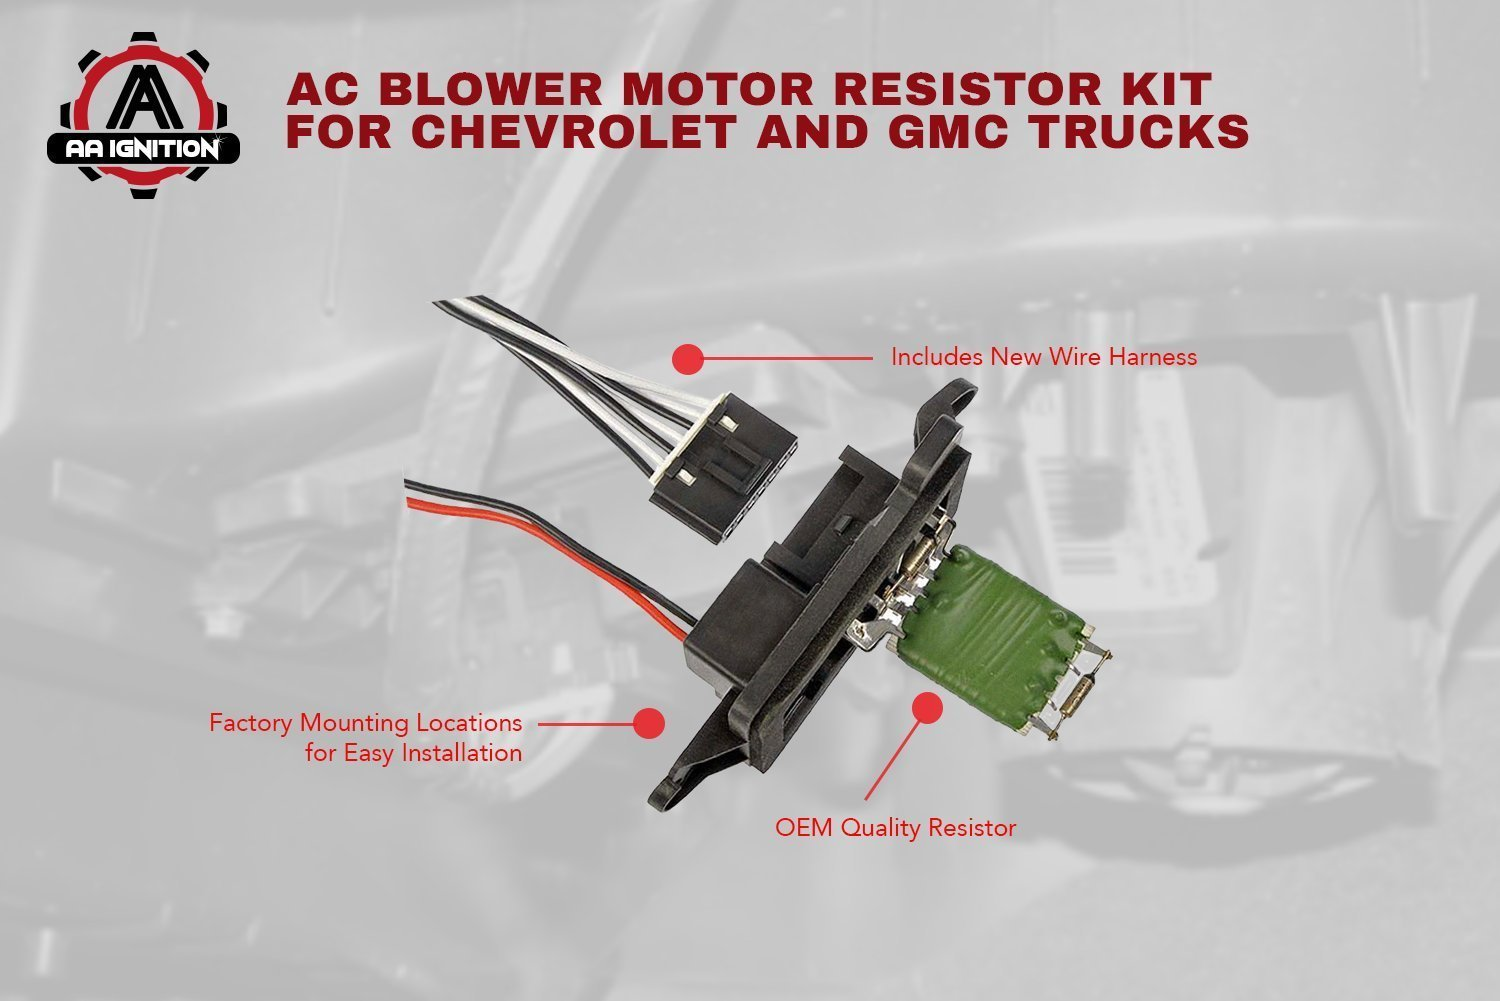 Ac Blower Motor Resistor Kit With Harness Replaces 96 Chevy Tahoe And Heater Wiring Diagram 89019088 973 405 15 81086 22807123 Fits Silverado Suburban Avalanche